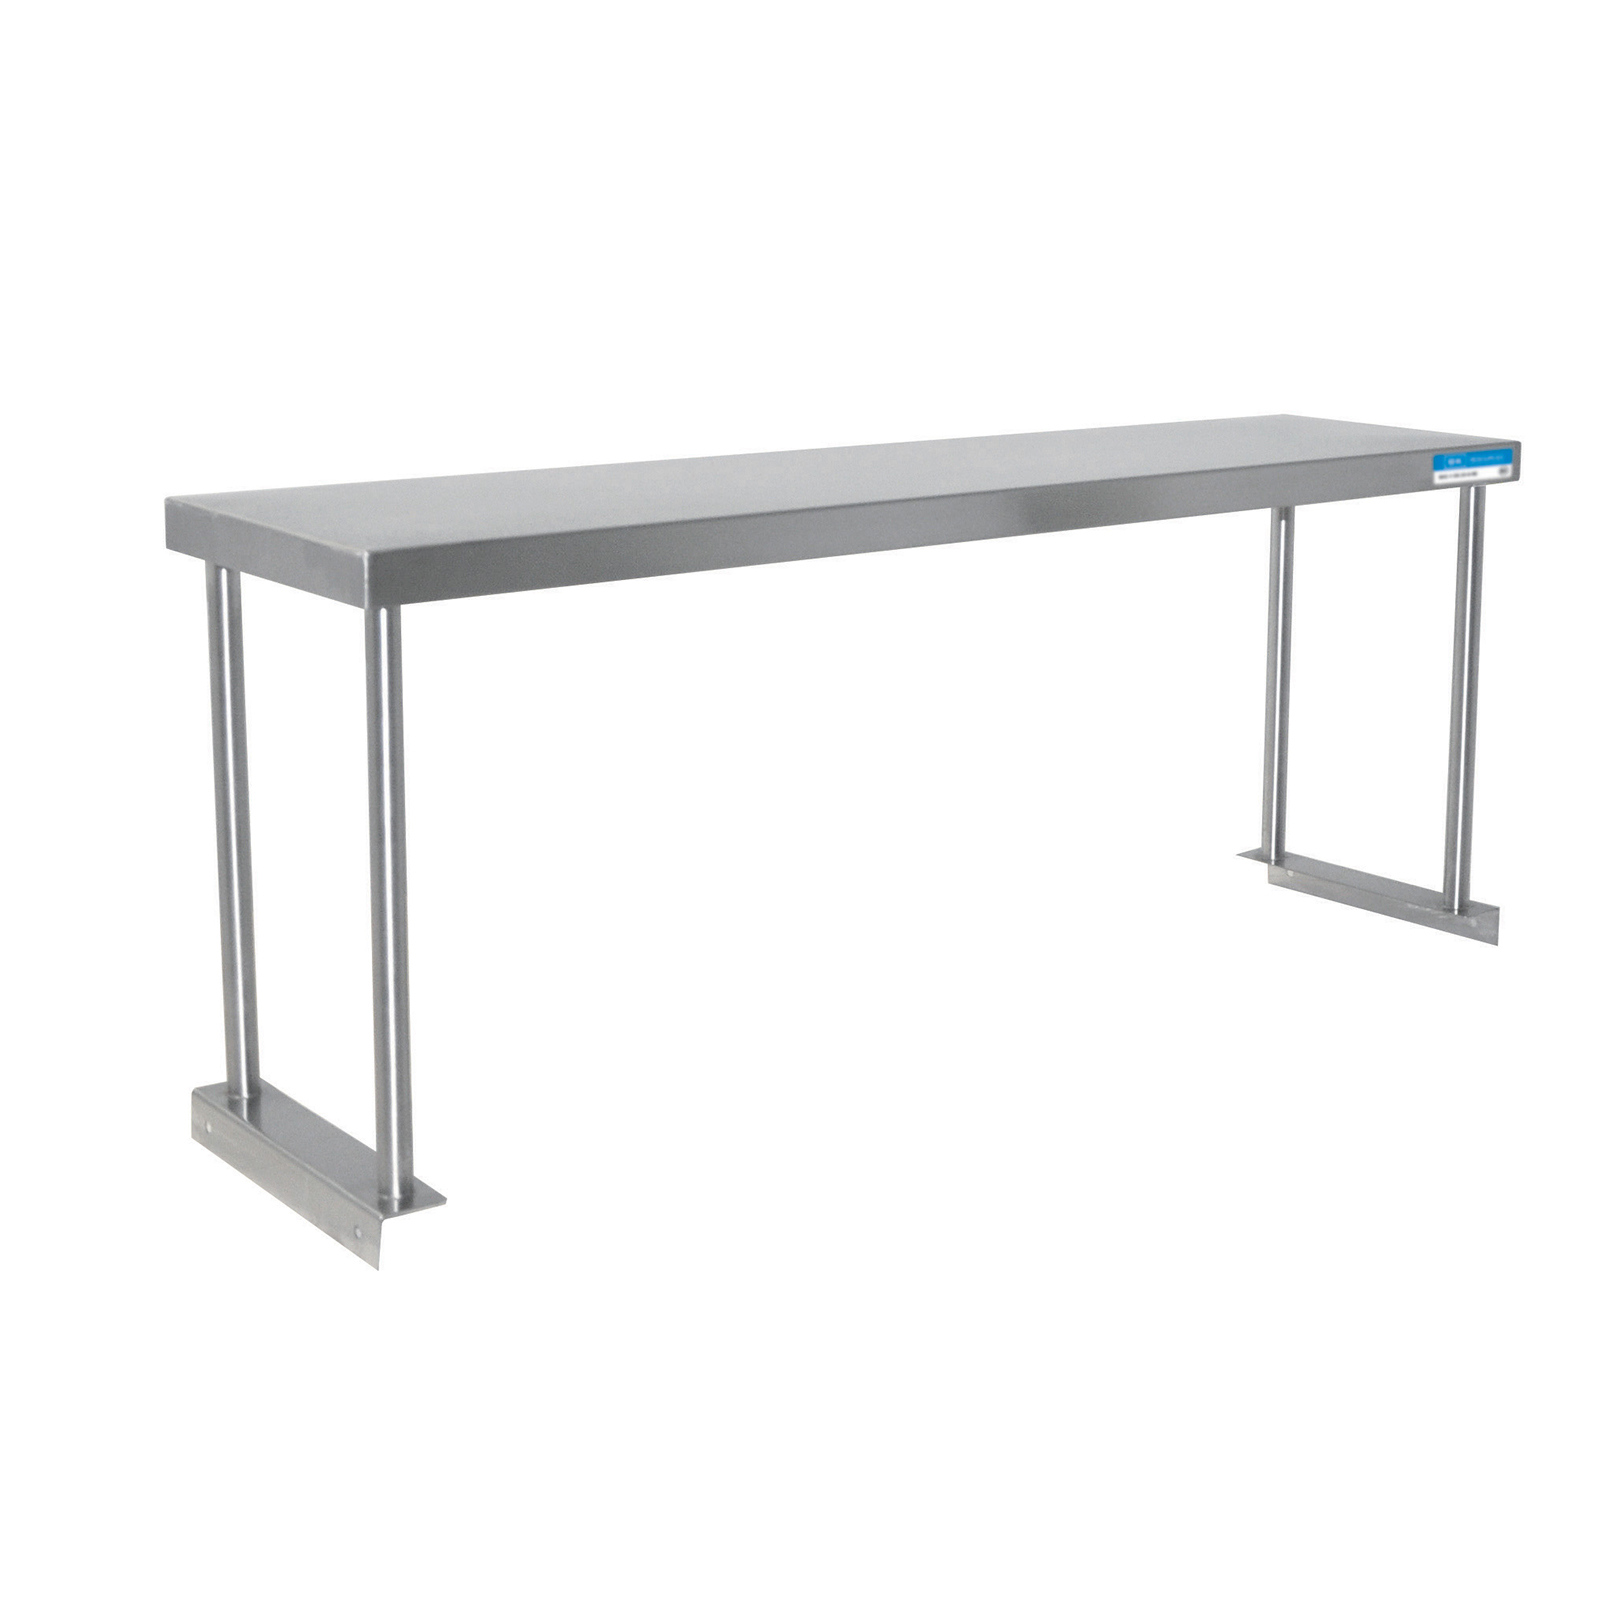 BK Resources BK-OSS-1872 overshelf, table-mounted